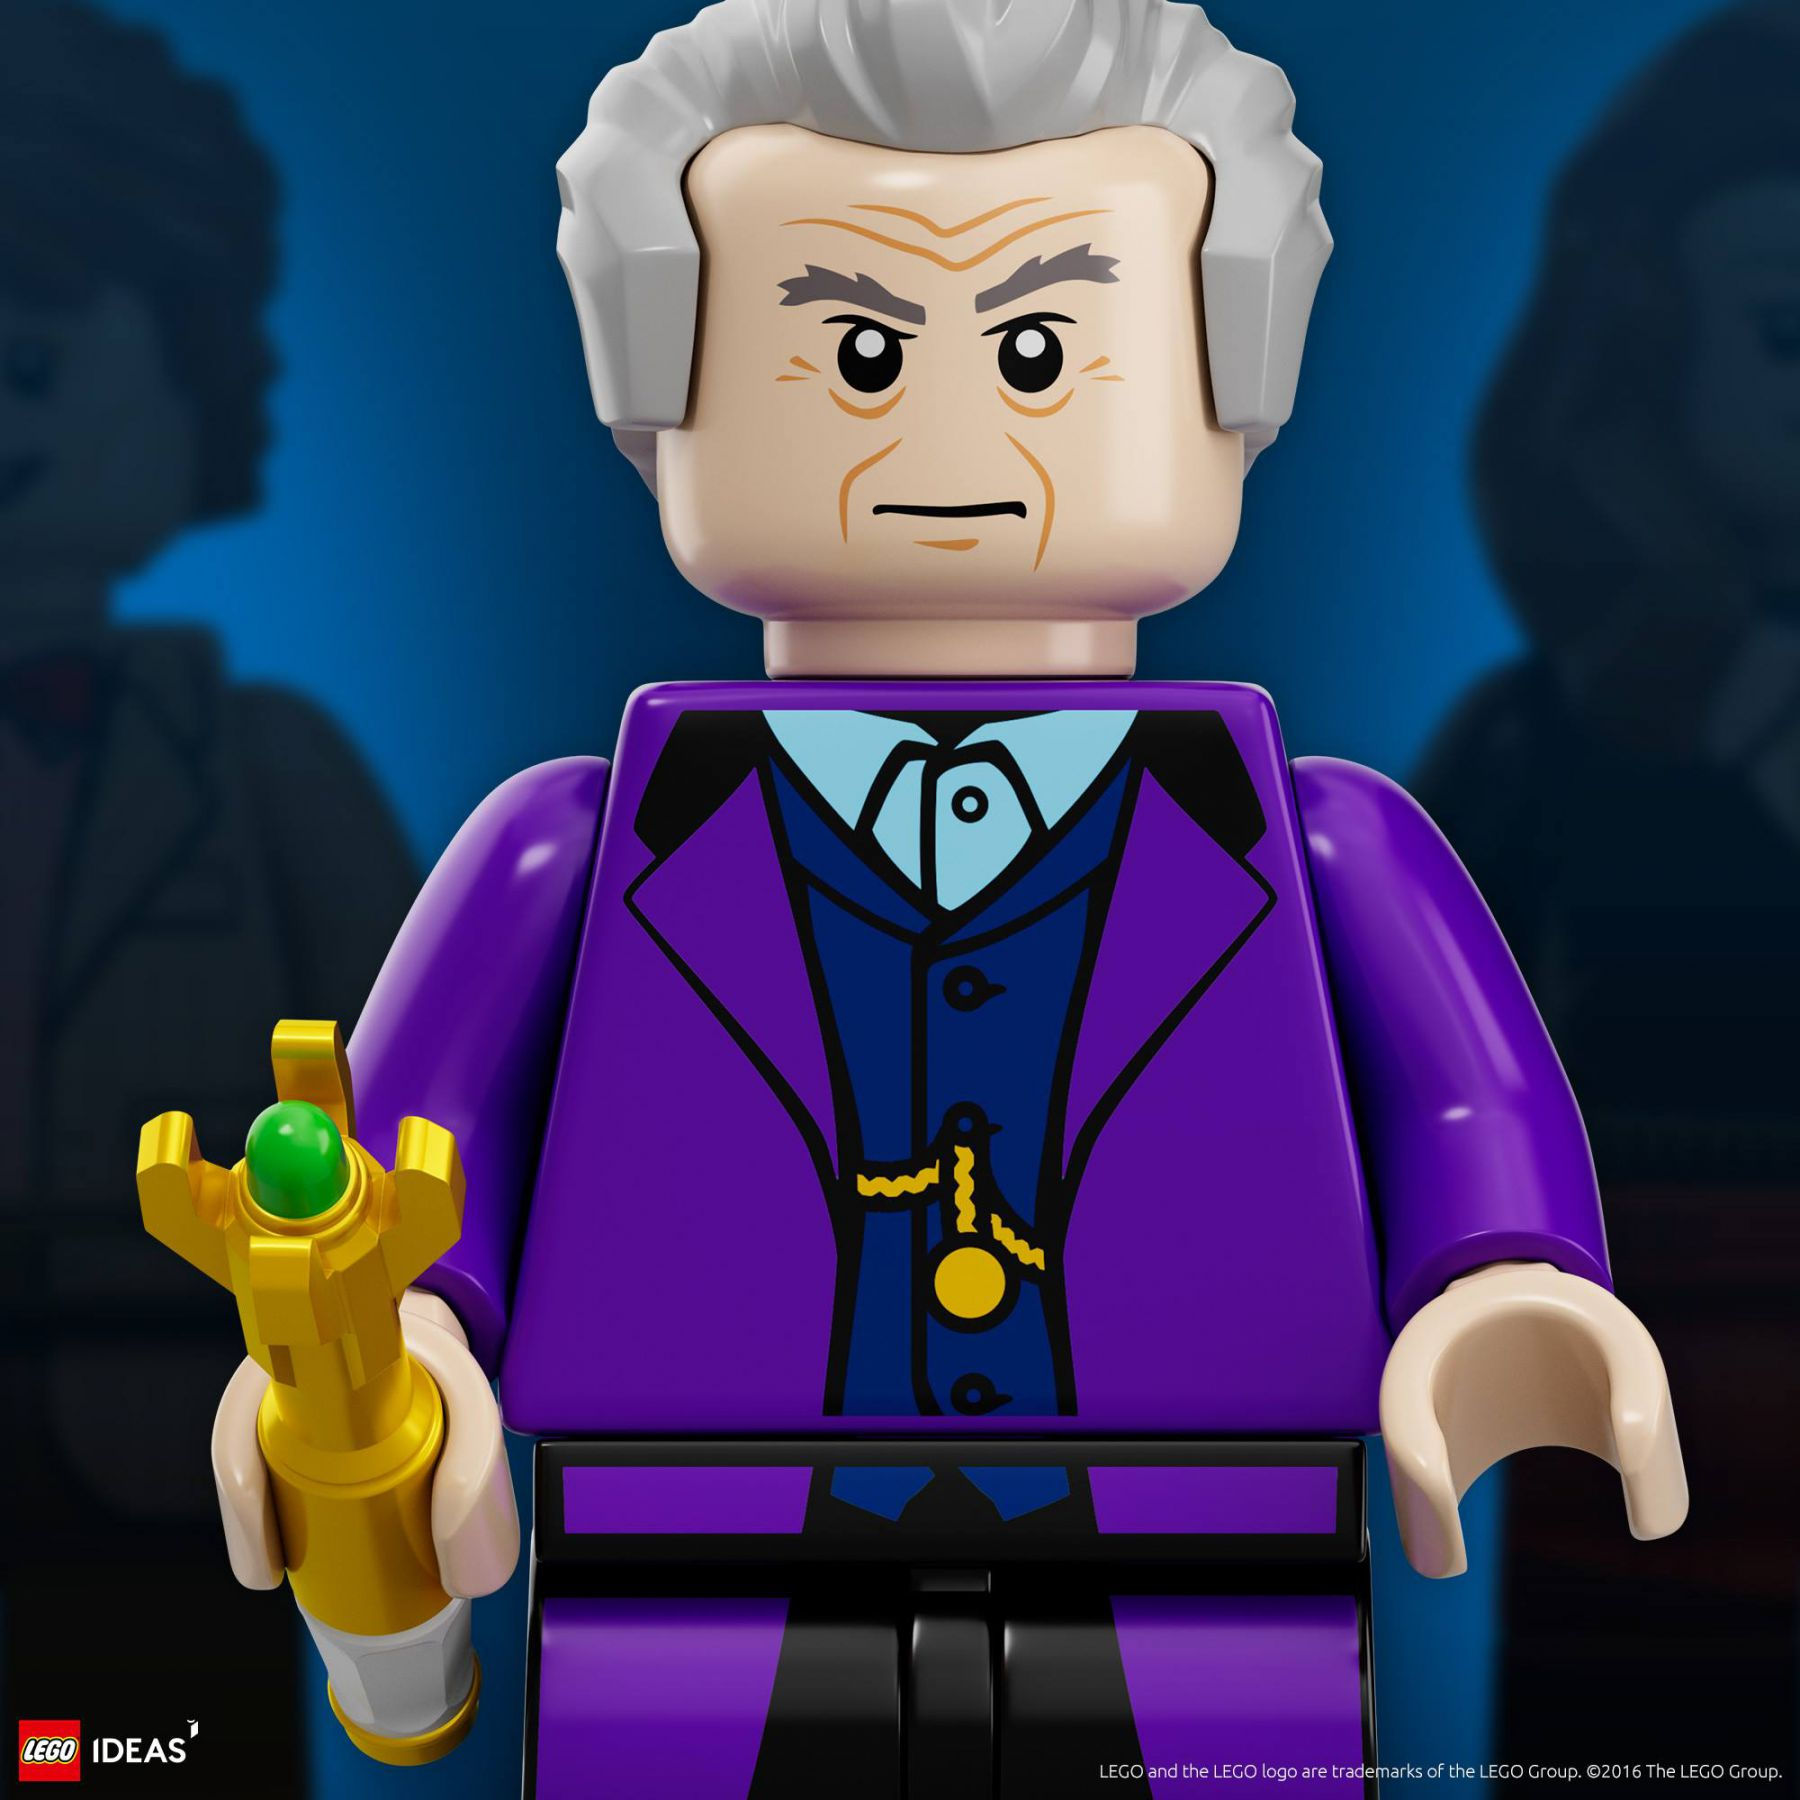 LEGO Ideas 21304 Doctor Who 21304-1_doctor_who_img06.jpg